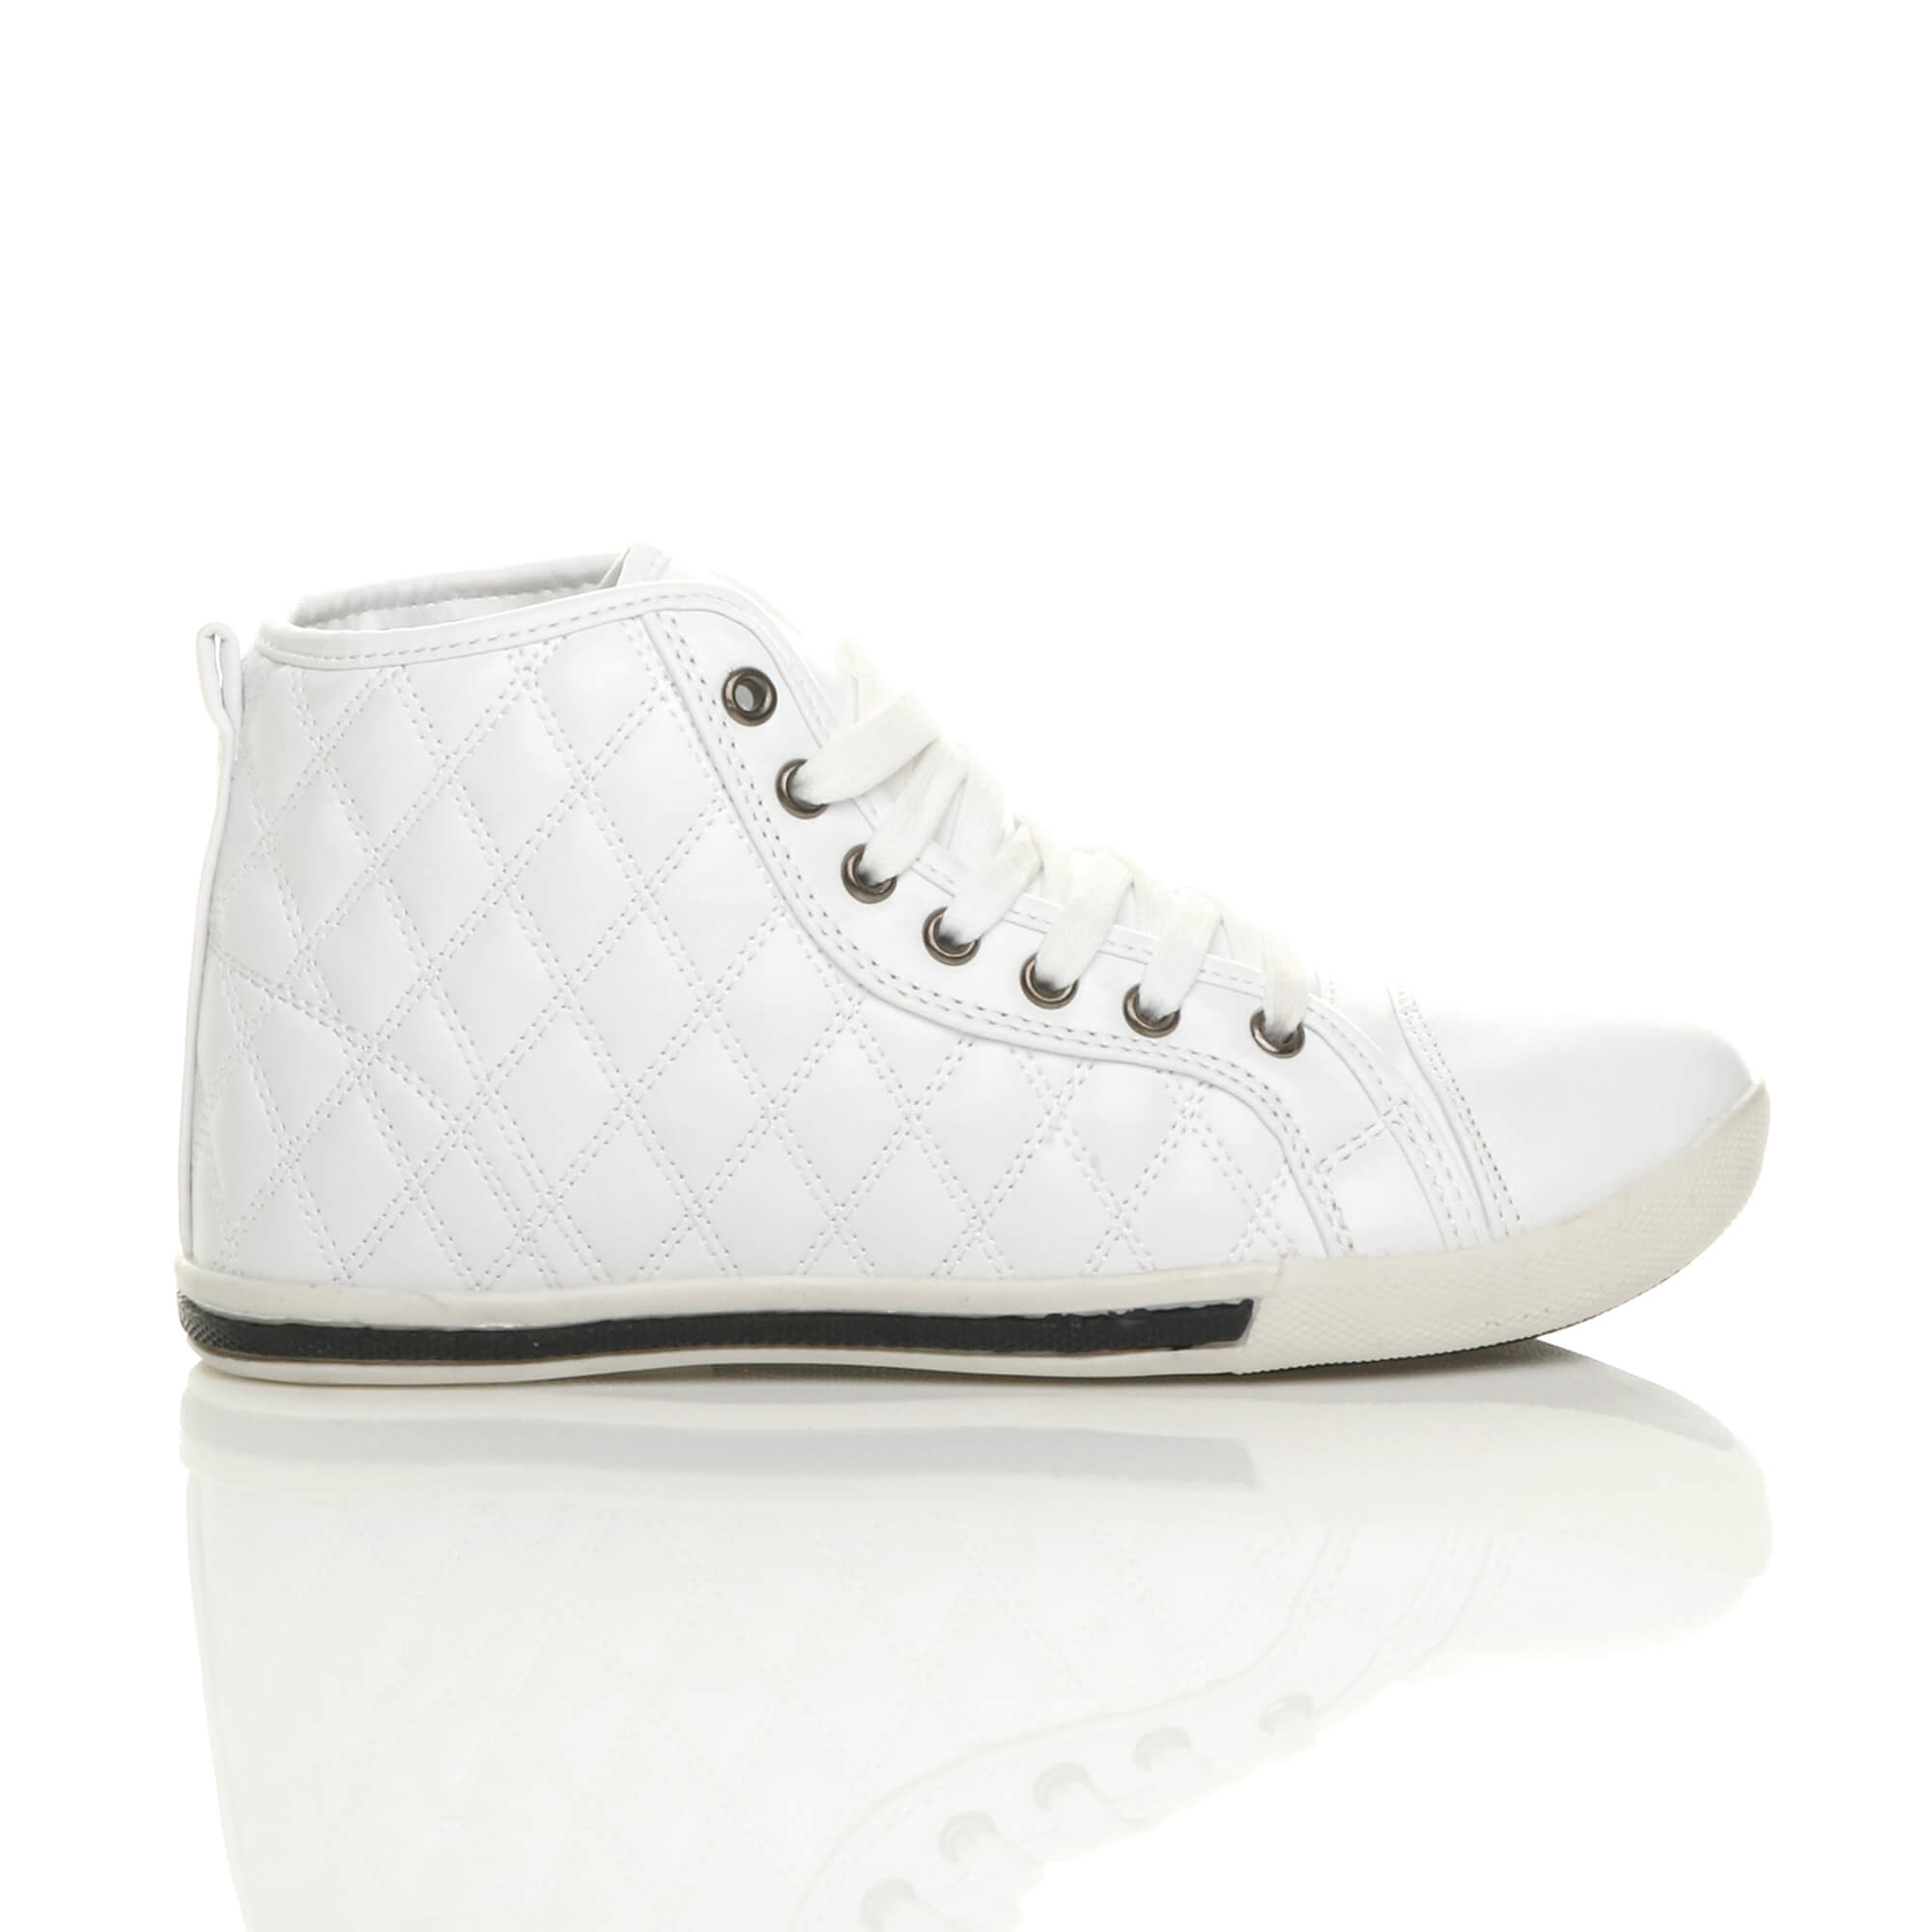 WOMENS-LADIES-FLAT-LACE-UP-QUILTED-HI-HIGH-TOP-PUMPS-TRAINERS-SHOES-SIZE